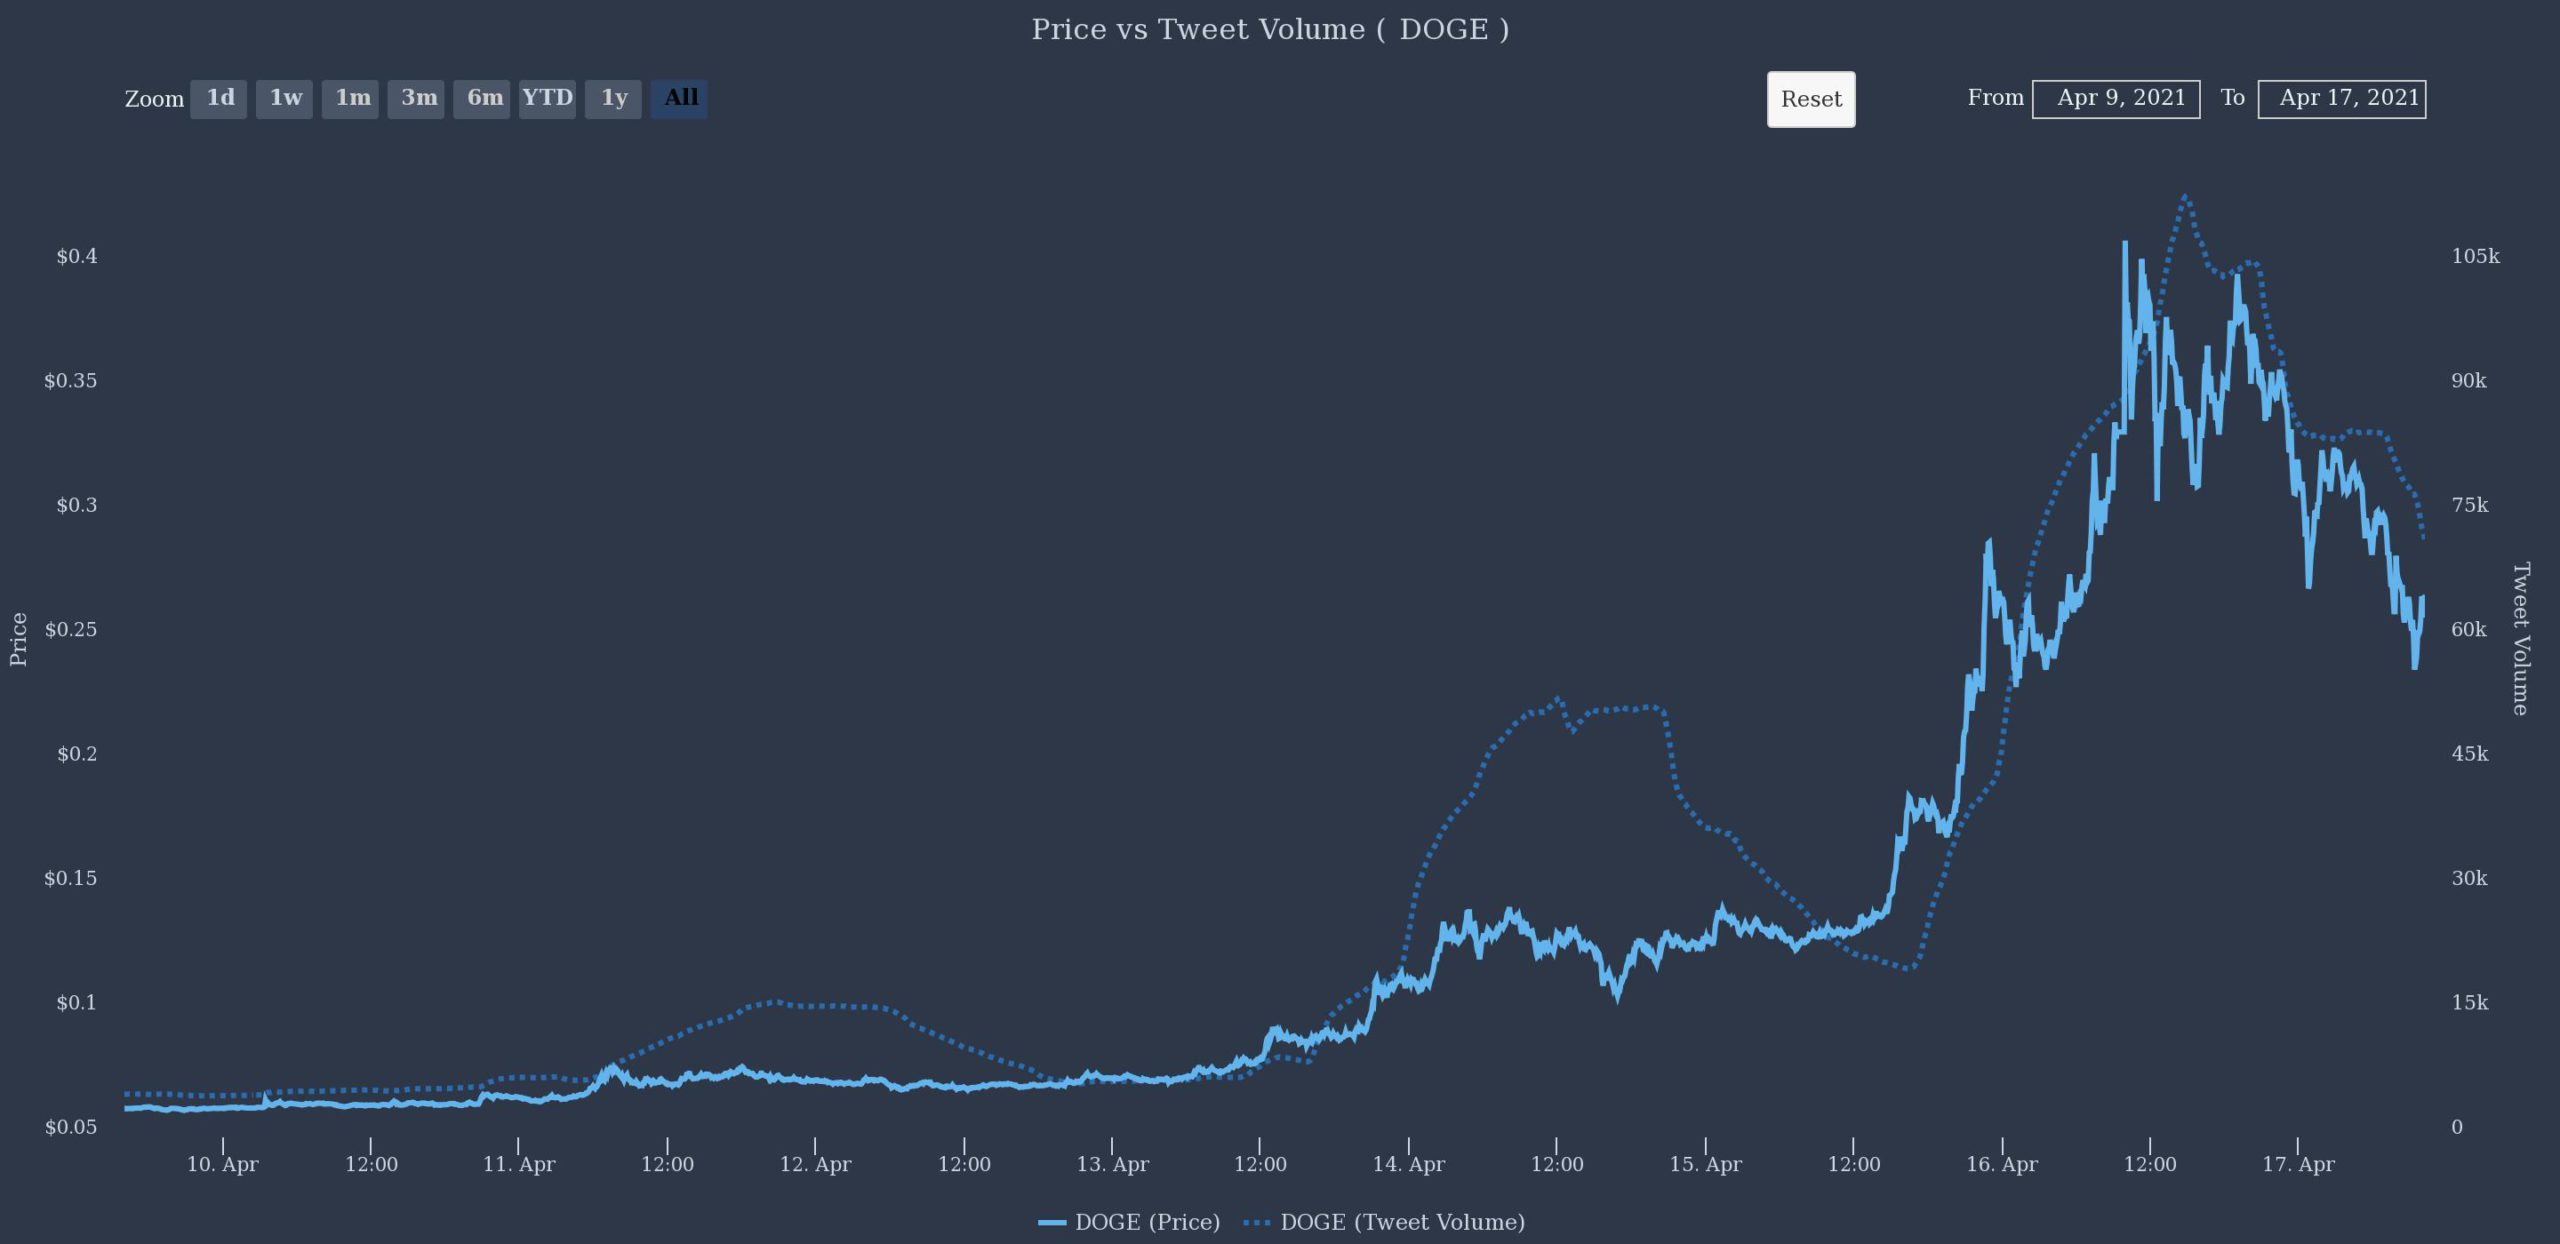 After a remarkable run, social media sentiment sours on DOGE